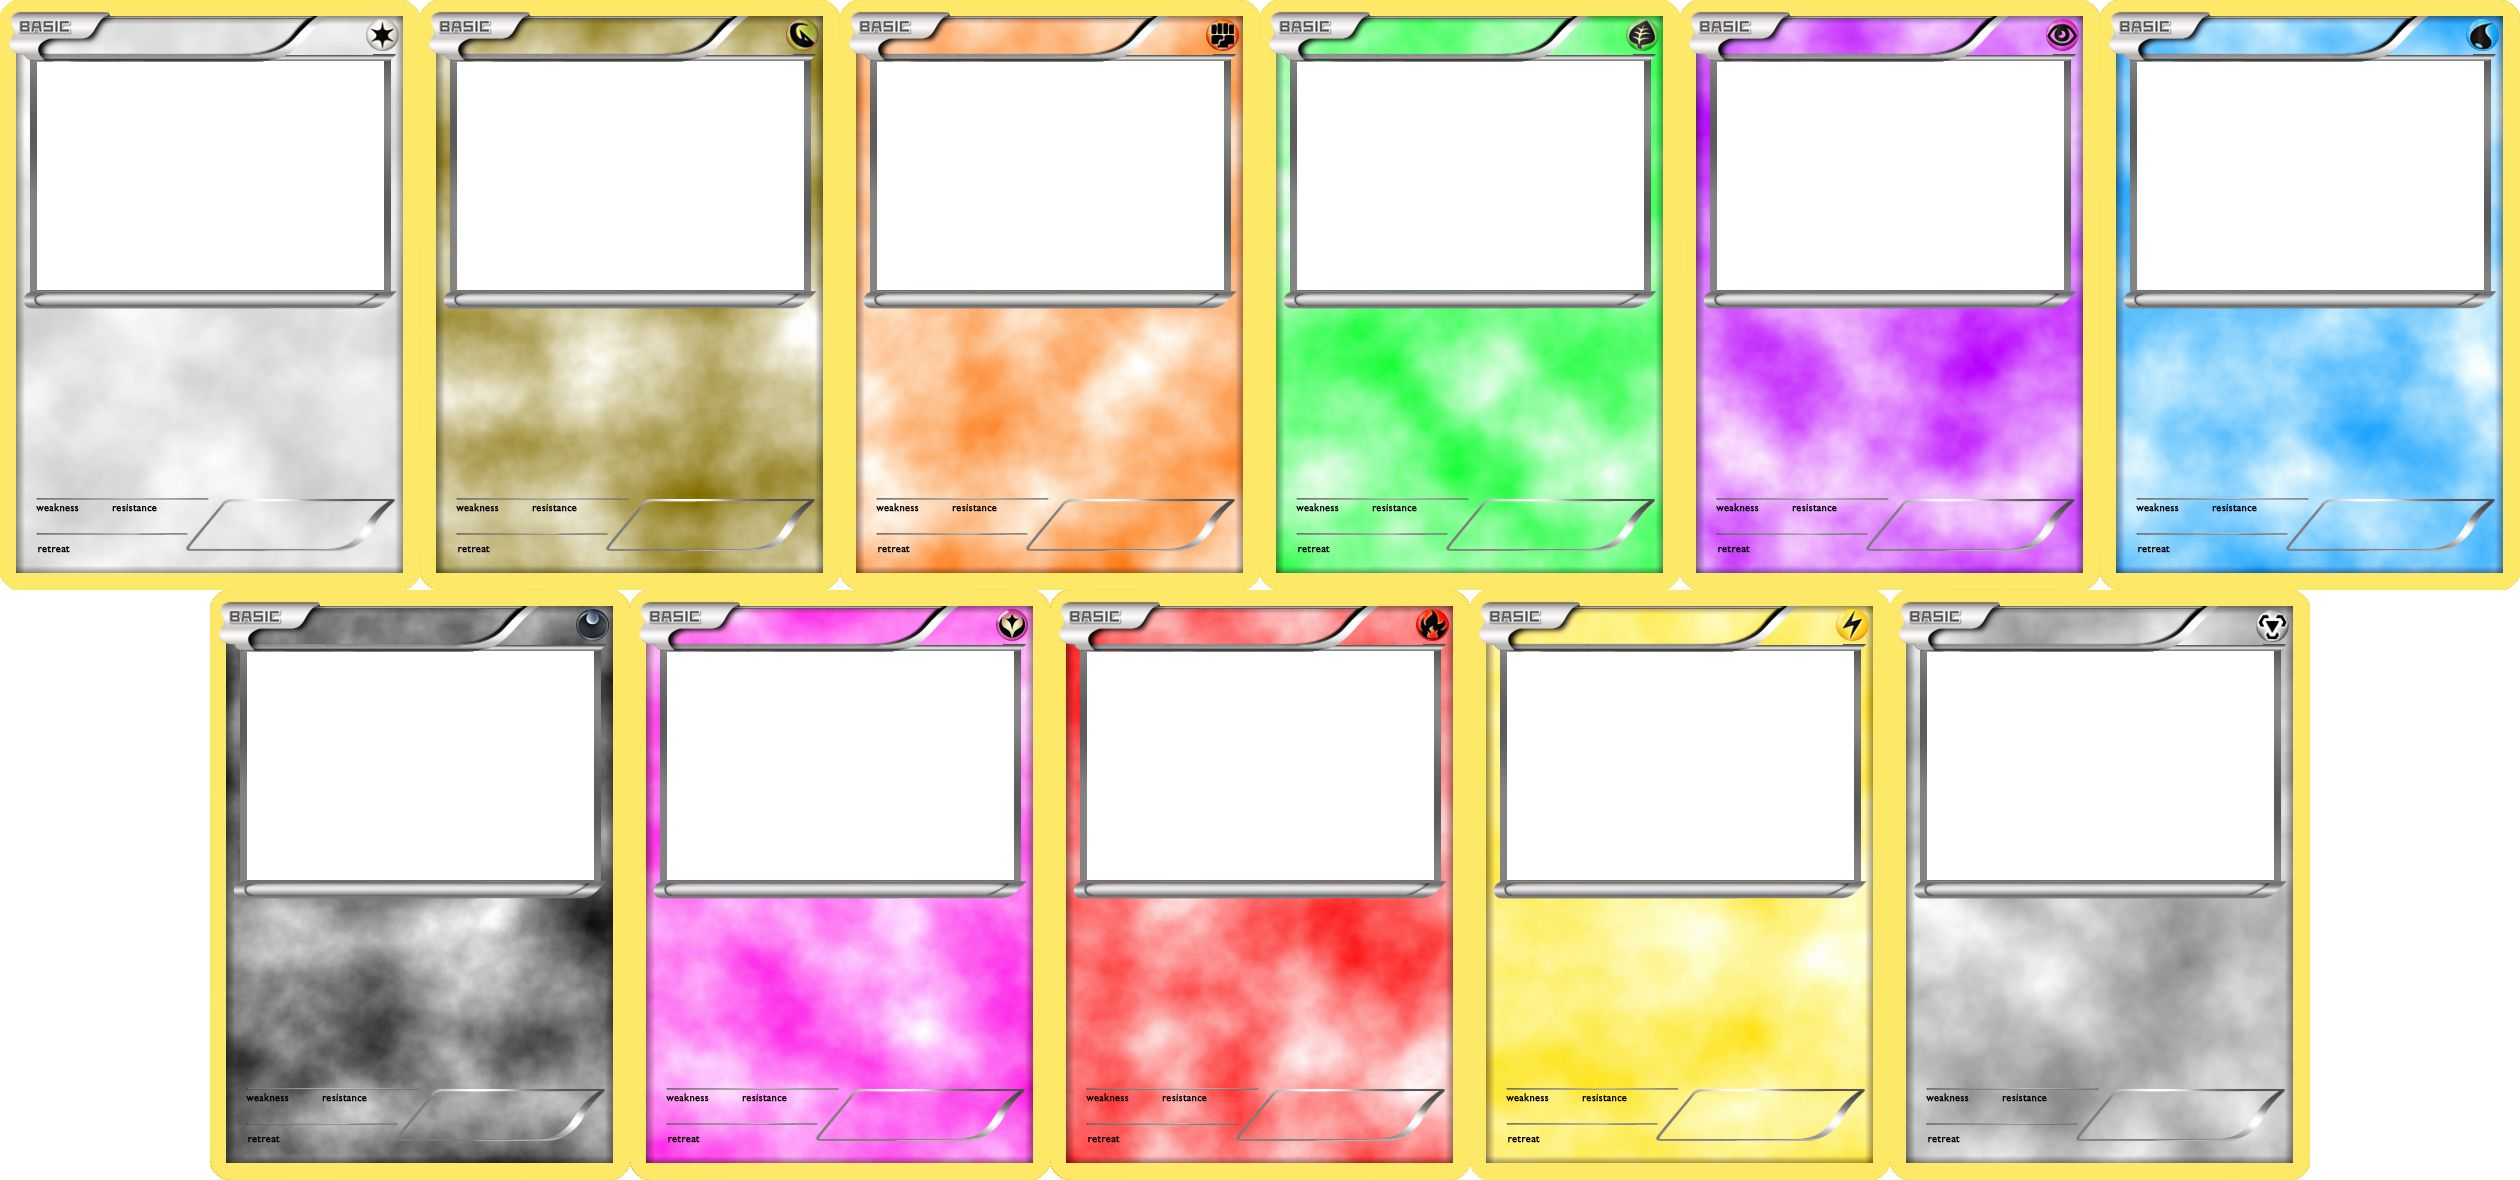 Blank Game Card Template Awesome Pokemon Blank Card